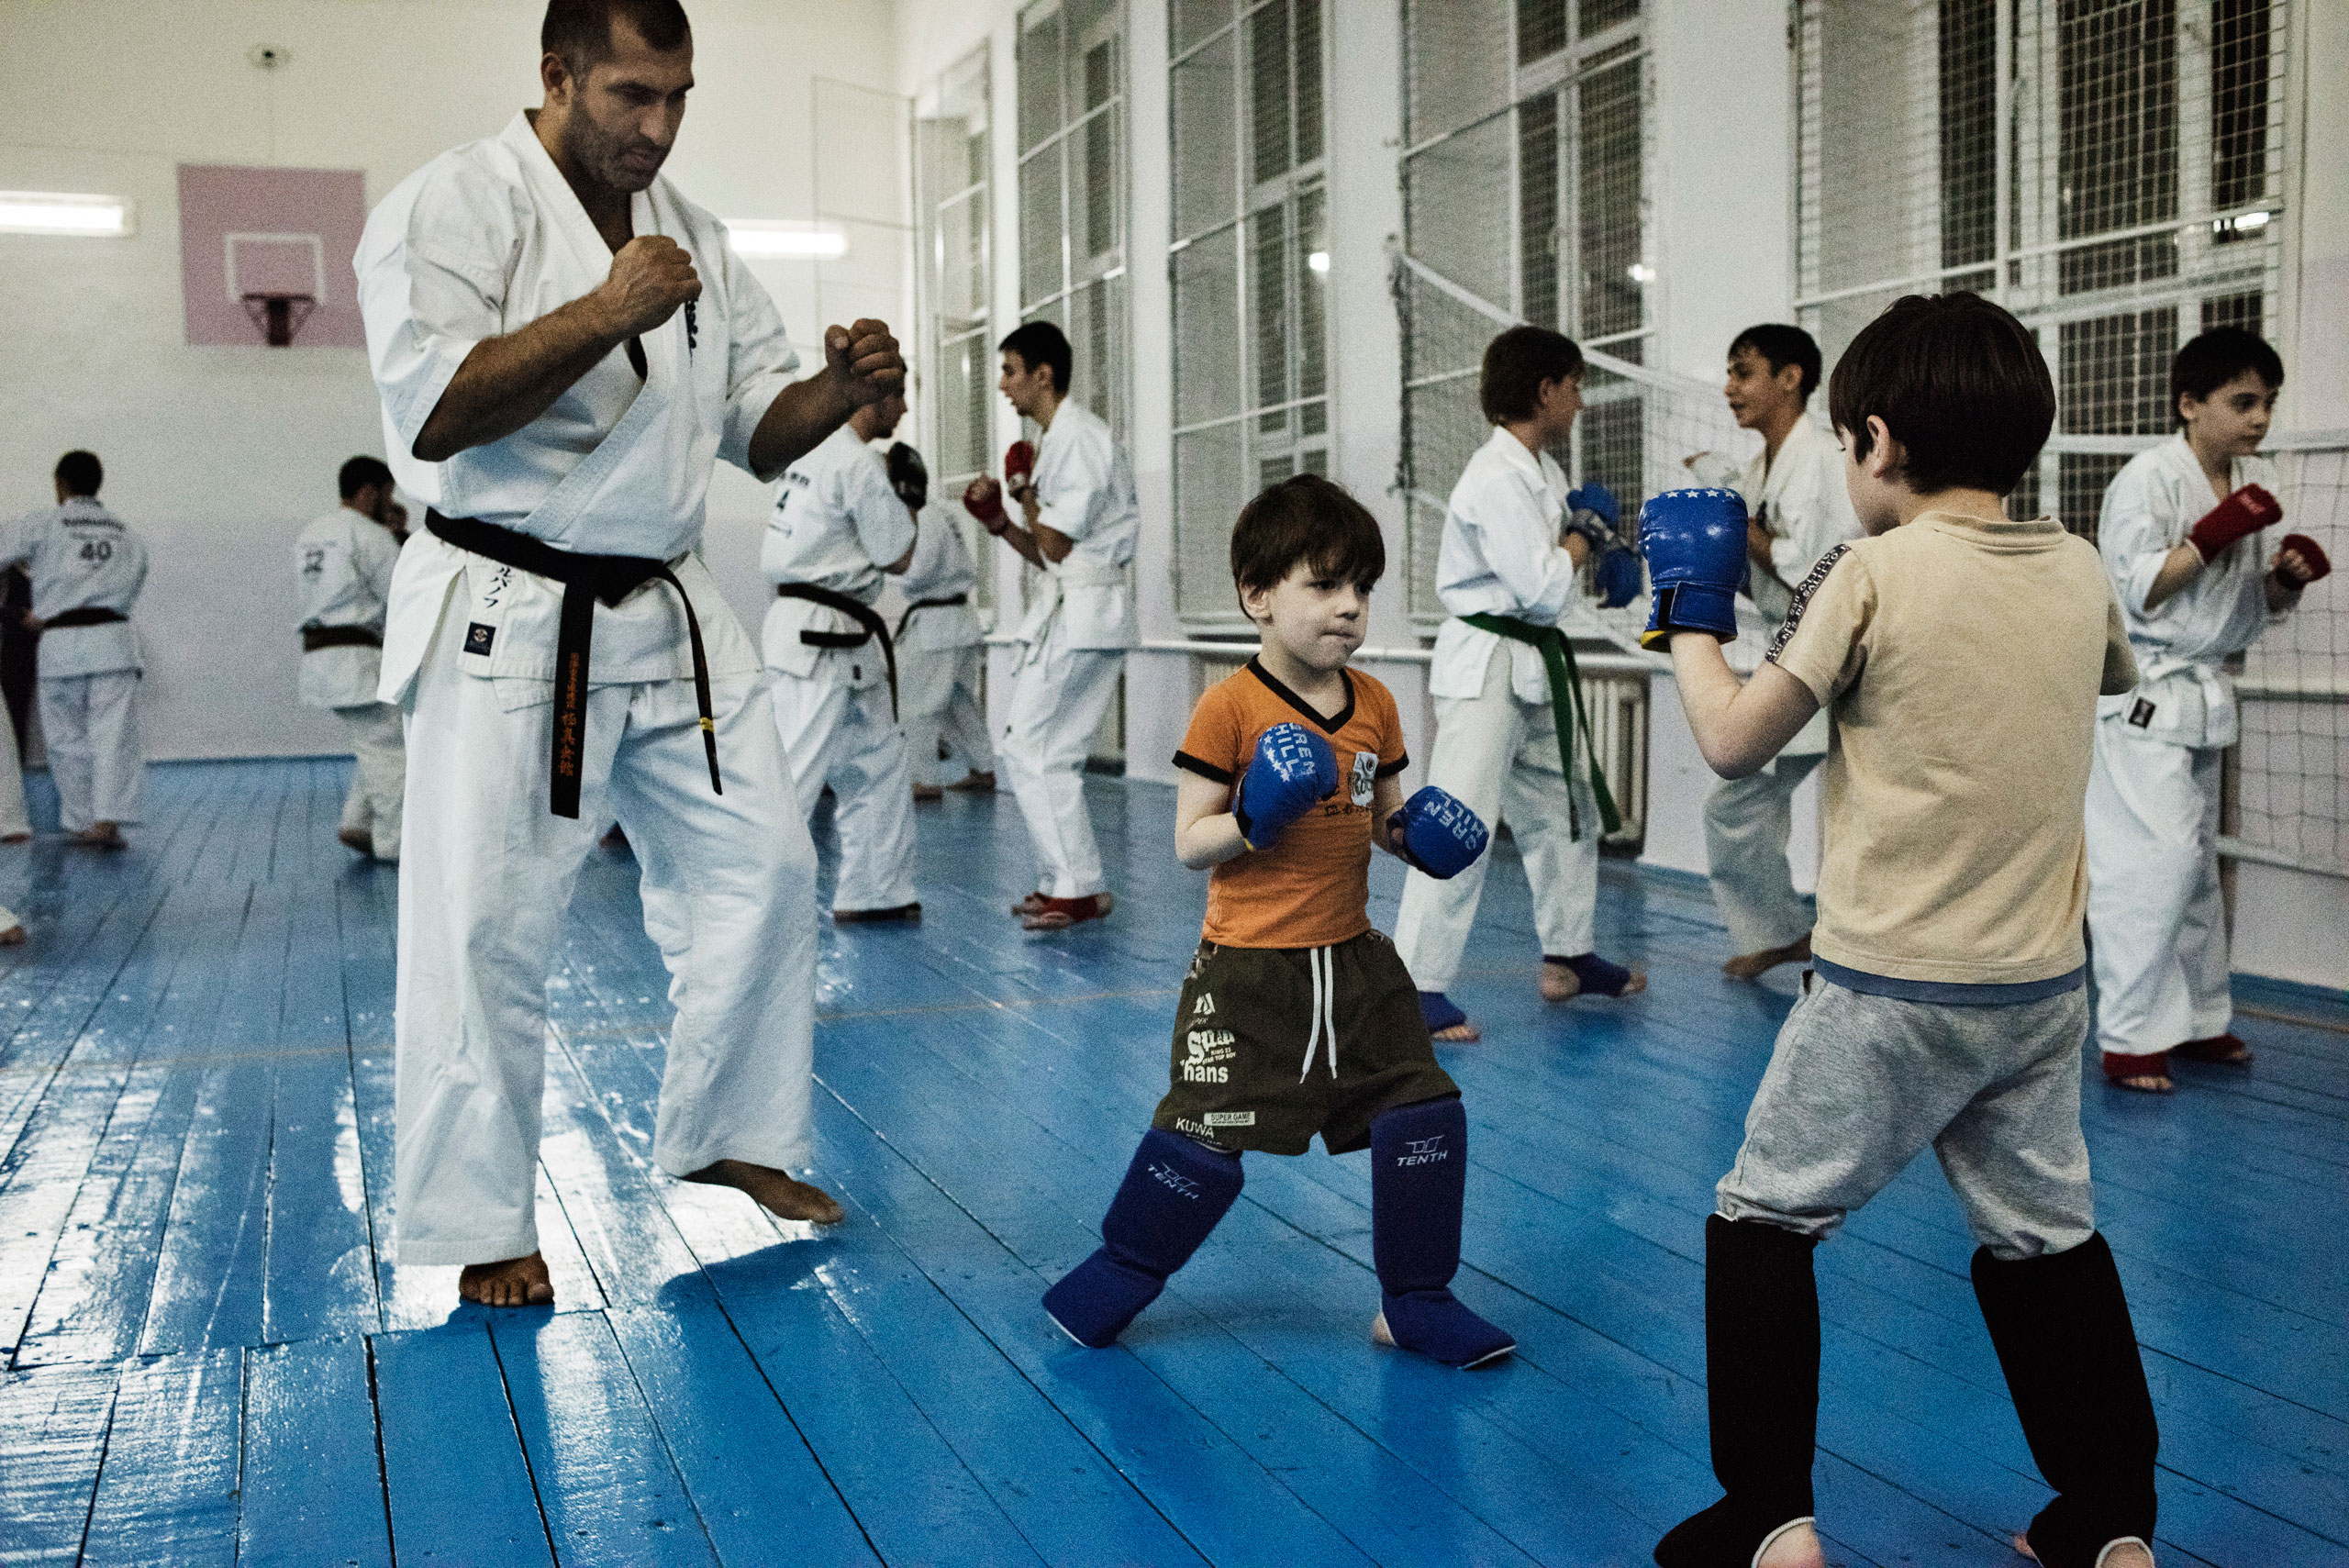 """Lechi Kurbanov, a world champion in karate and undefeated professional kickboxer, instructs students in karate at a gym in Grozny, Chechnya. """"Discipline is in our blood,"""" he says. """"We can do anything if our leader puts us on the path to do it."""" His best students go on to serve in some branches of the armed forces, April 2015."""